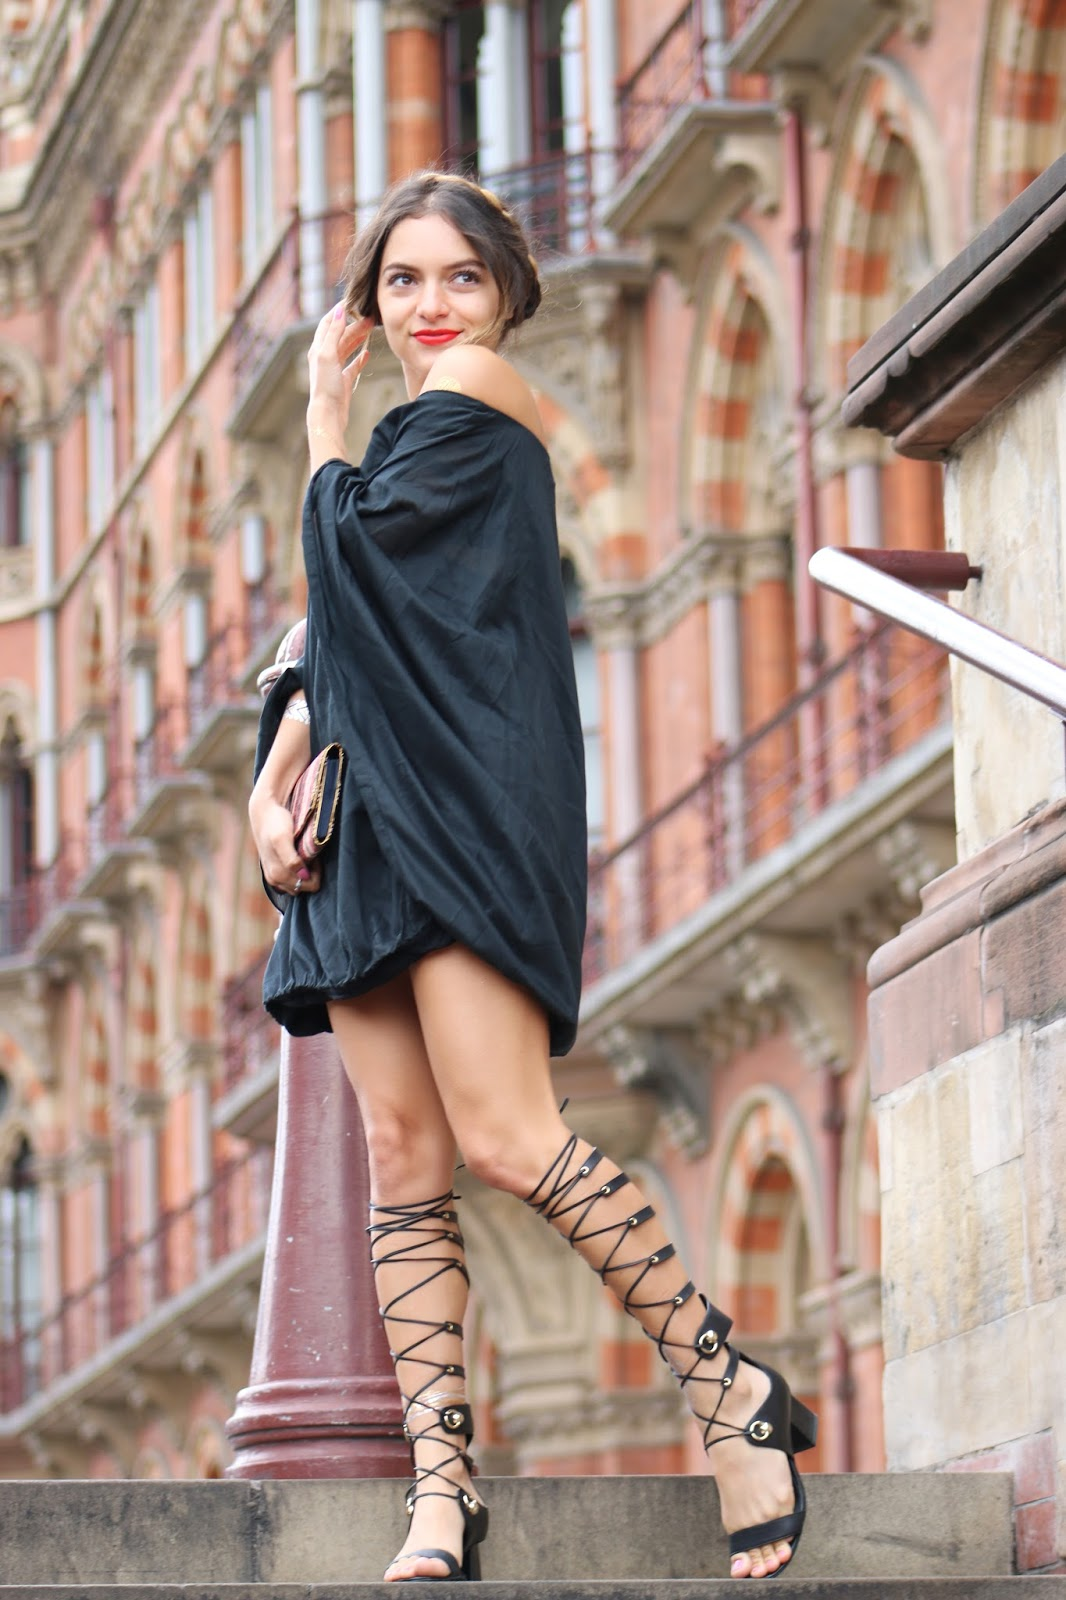 How To Wear Gladiator Heels With A Dress